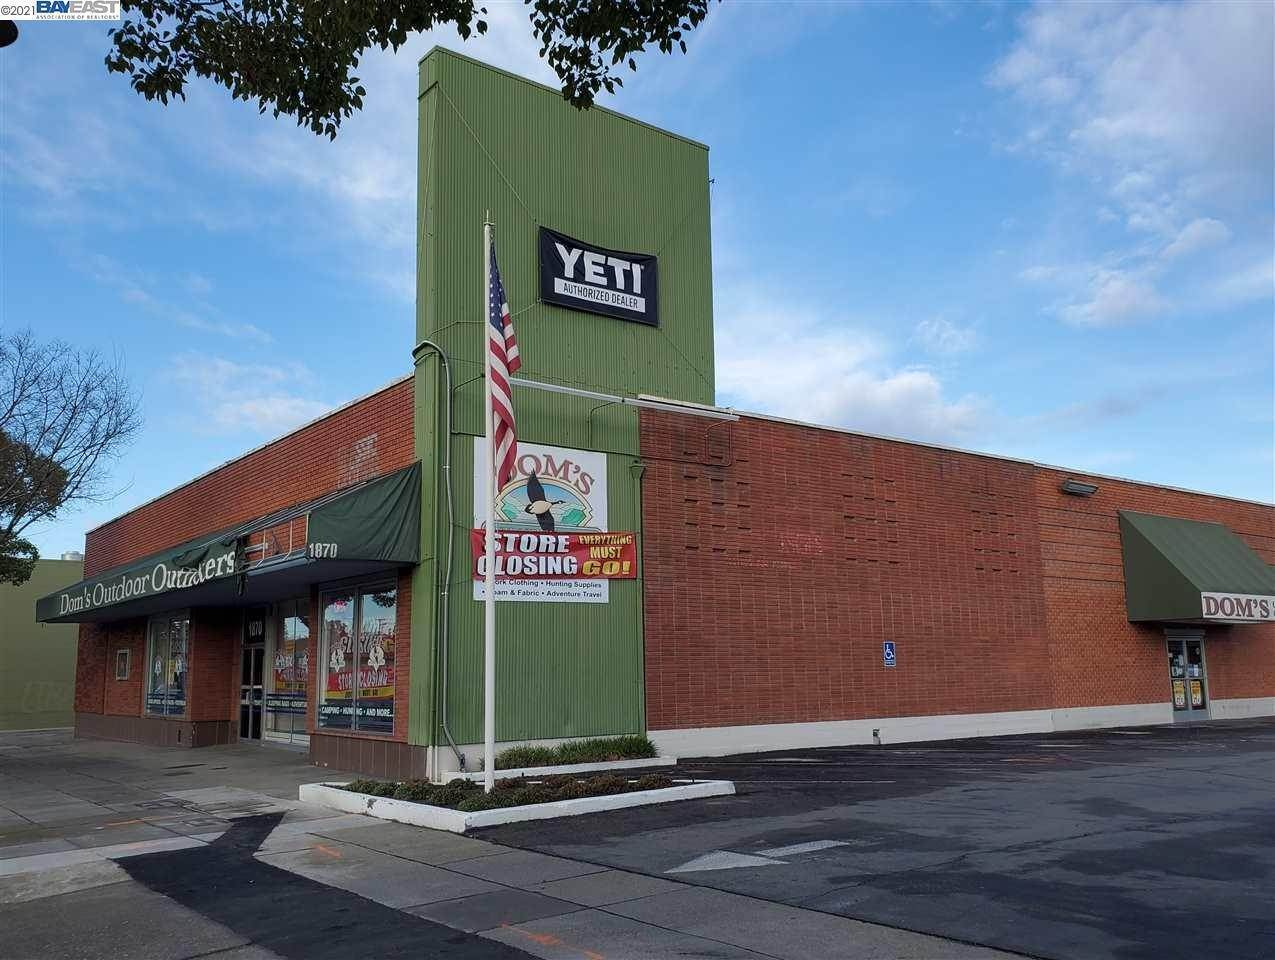 Commercial / Industrial for Sale at 1870 1St Street Livermore, California 94550 United States